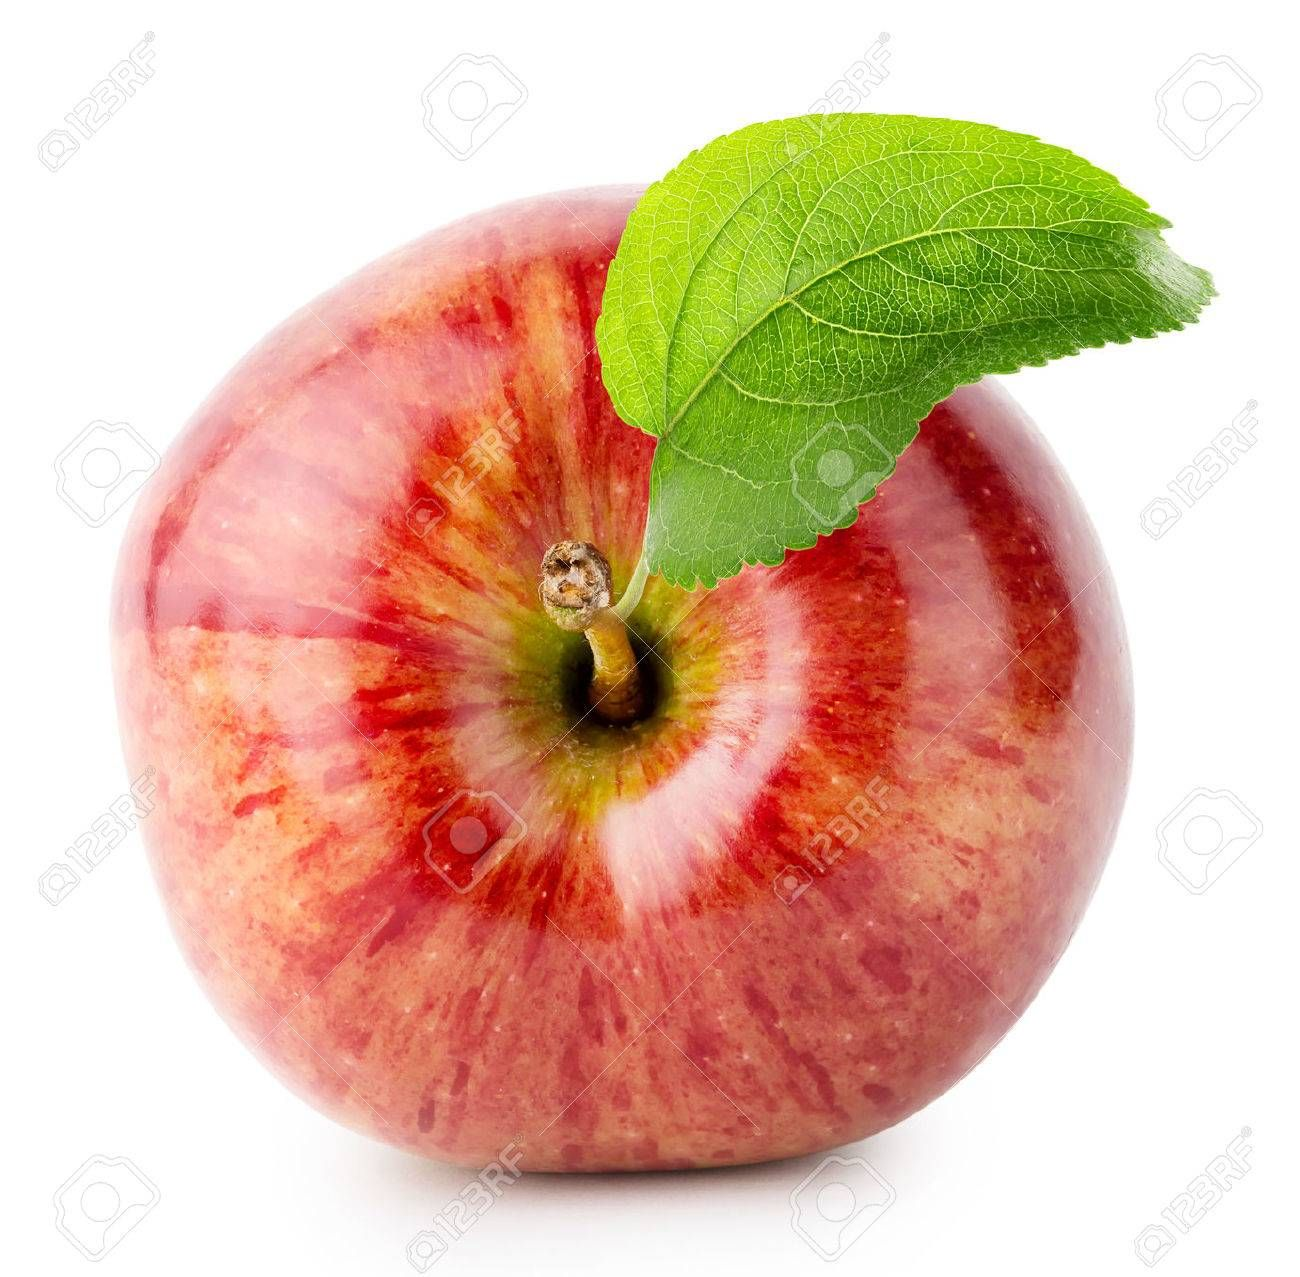 Shot From Above Red Apple With Green Leaf Isolated On White Background Aff Apple Green Shot Red White